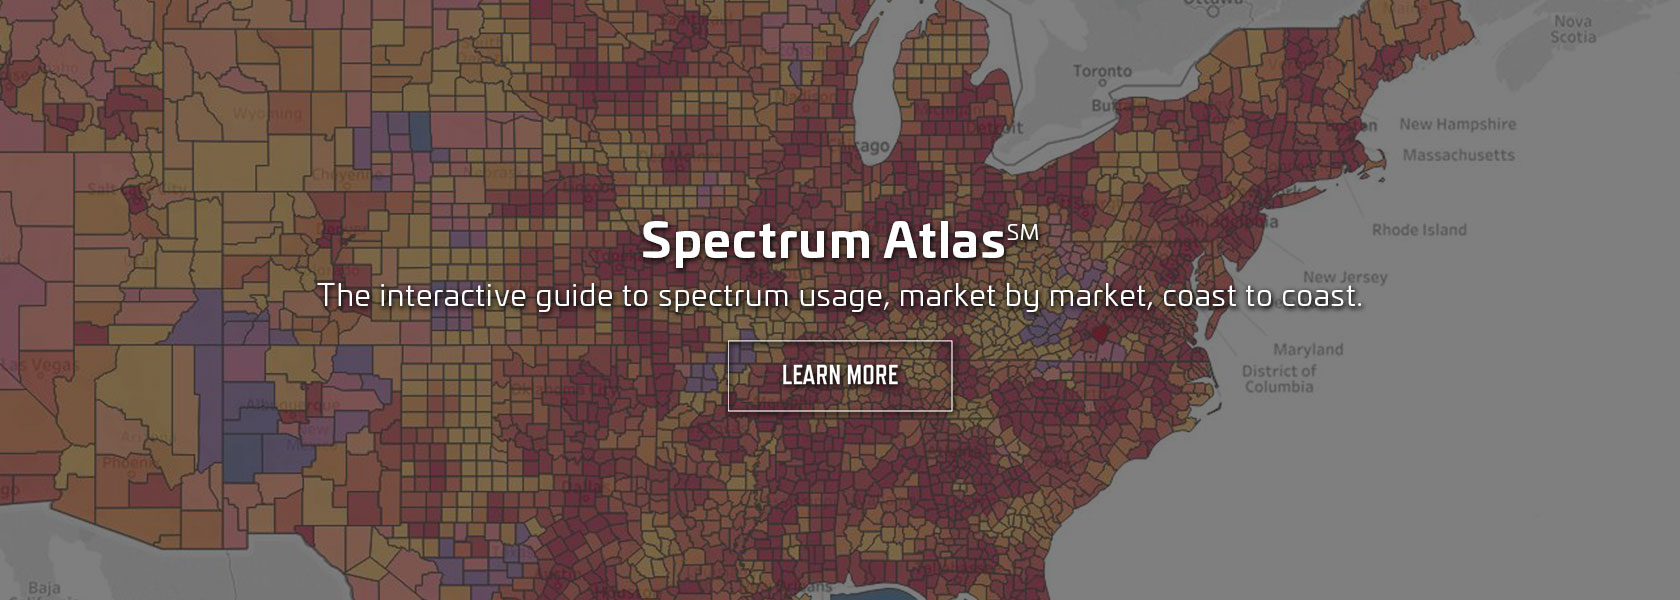 Spectrum Atlas